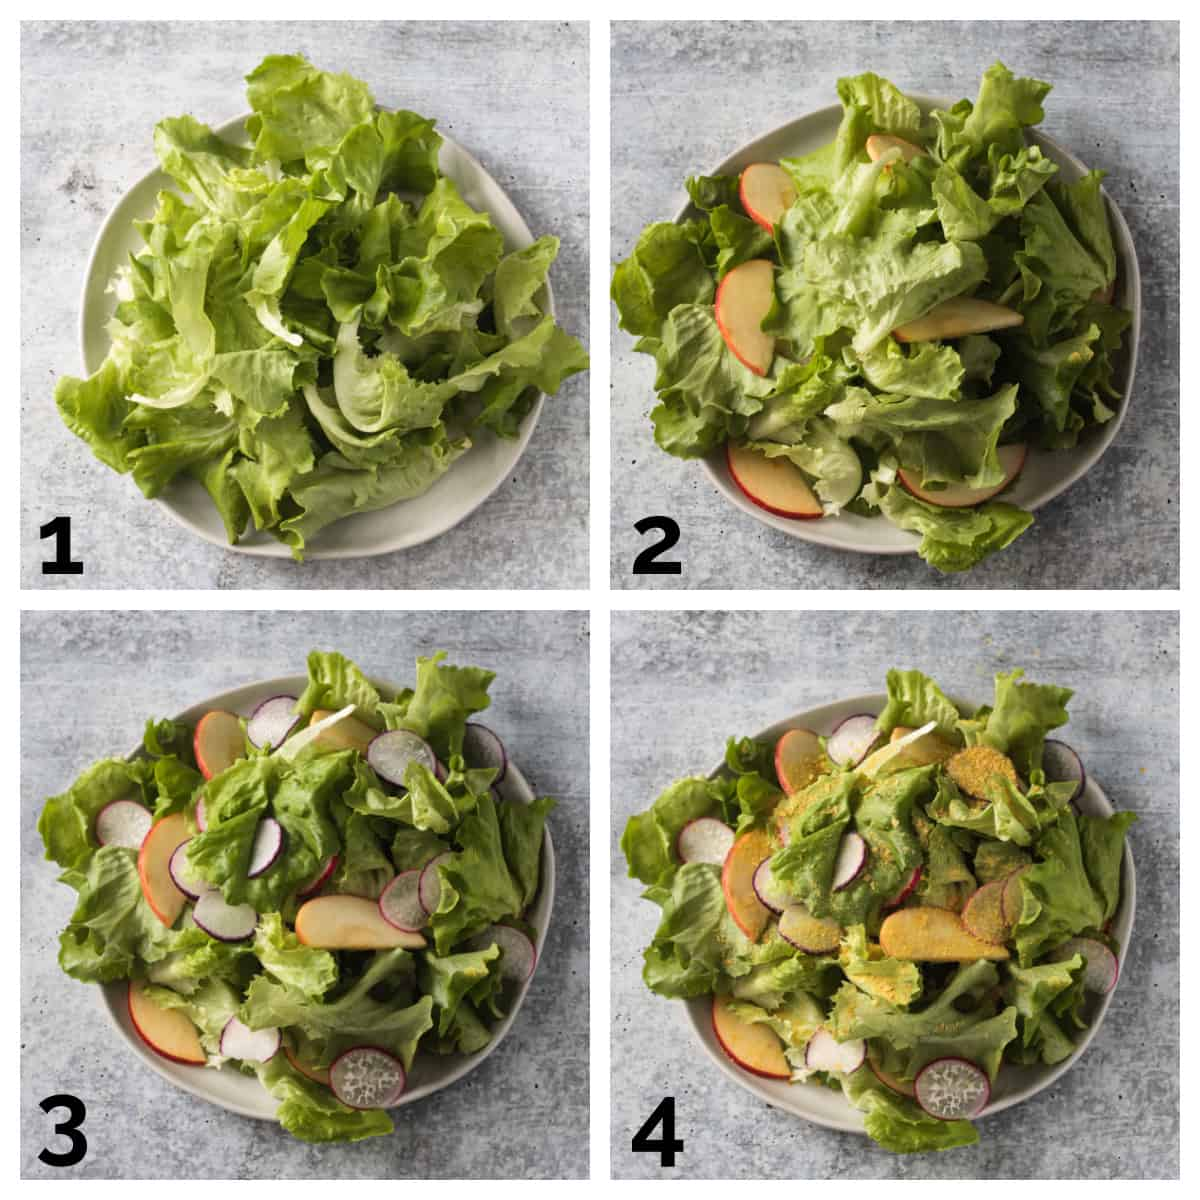 4 photo collage of assembling the lettuce, apples, radishes, and nutritional yeast.